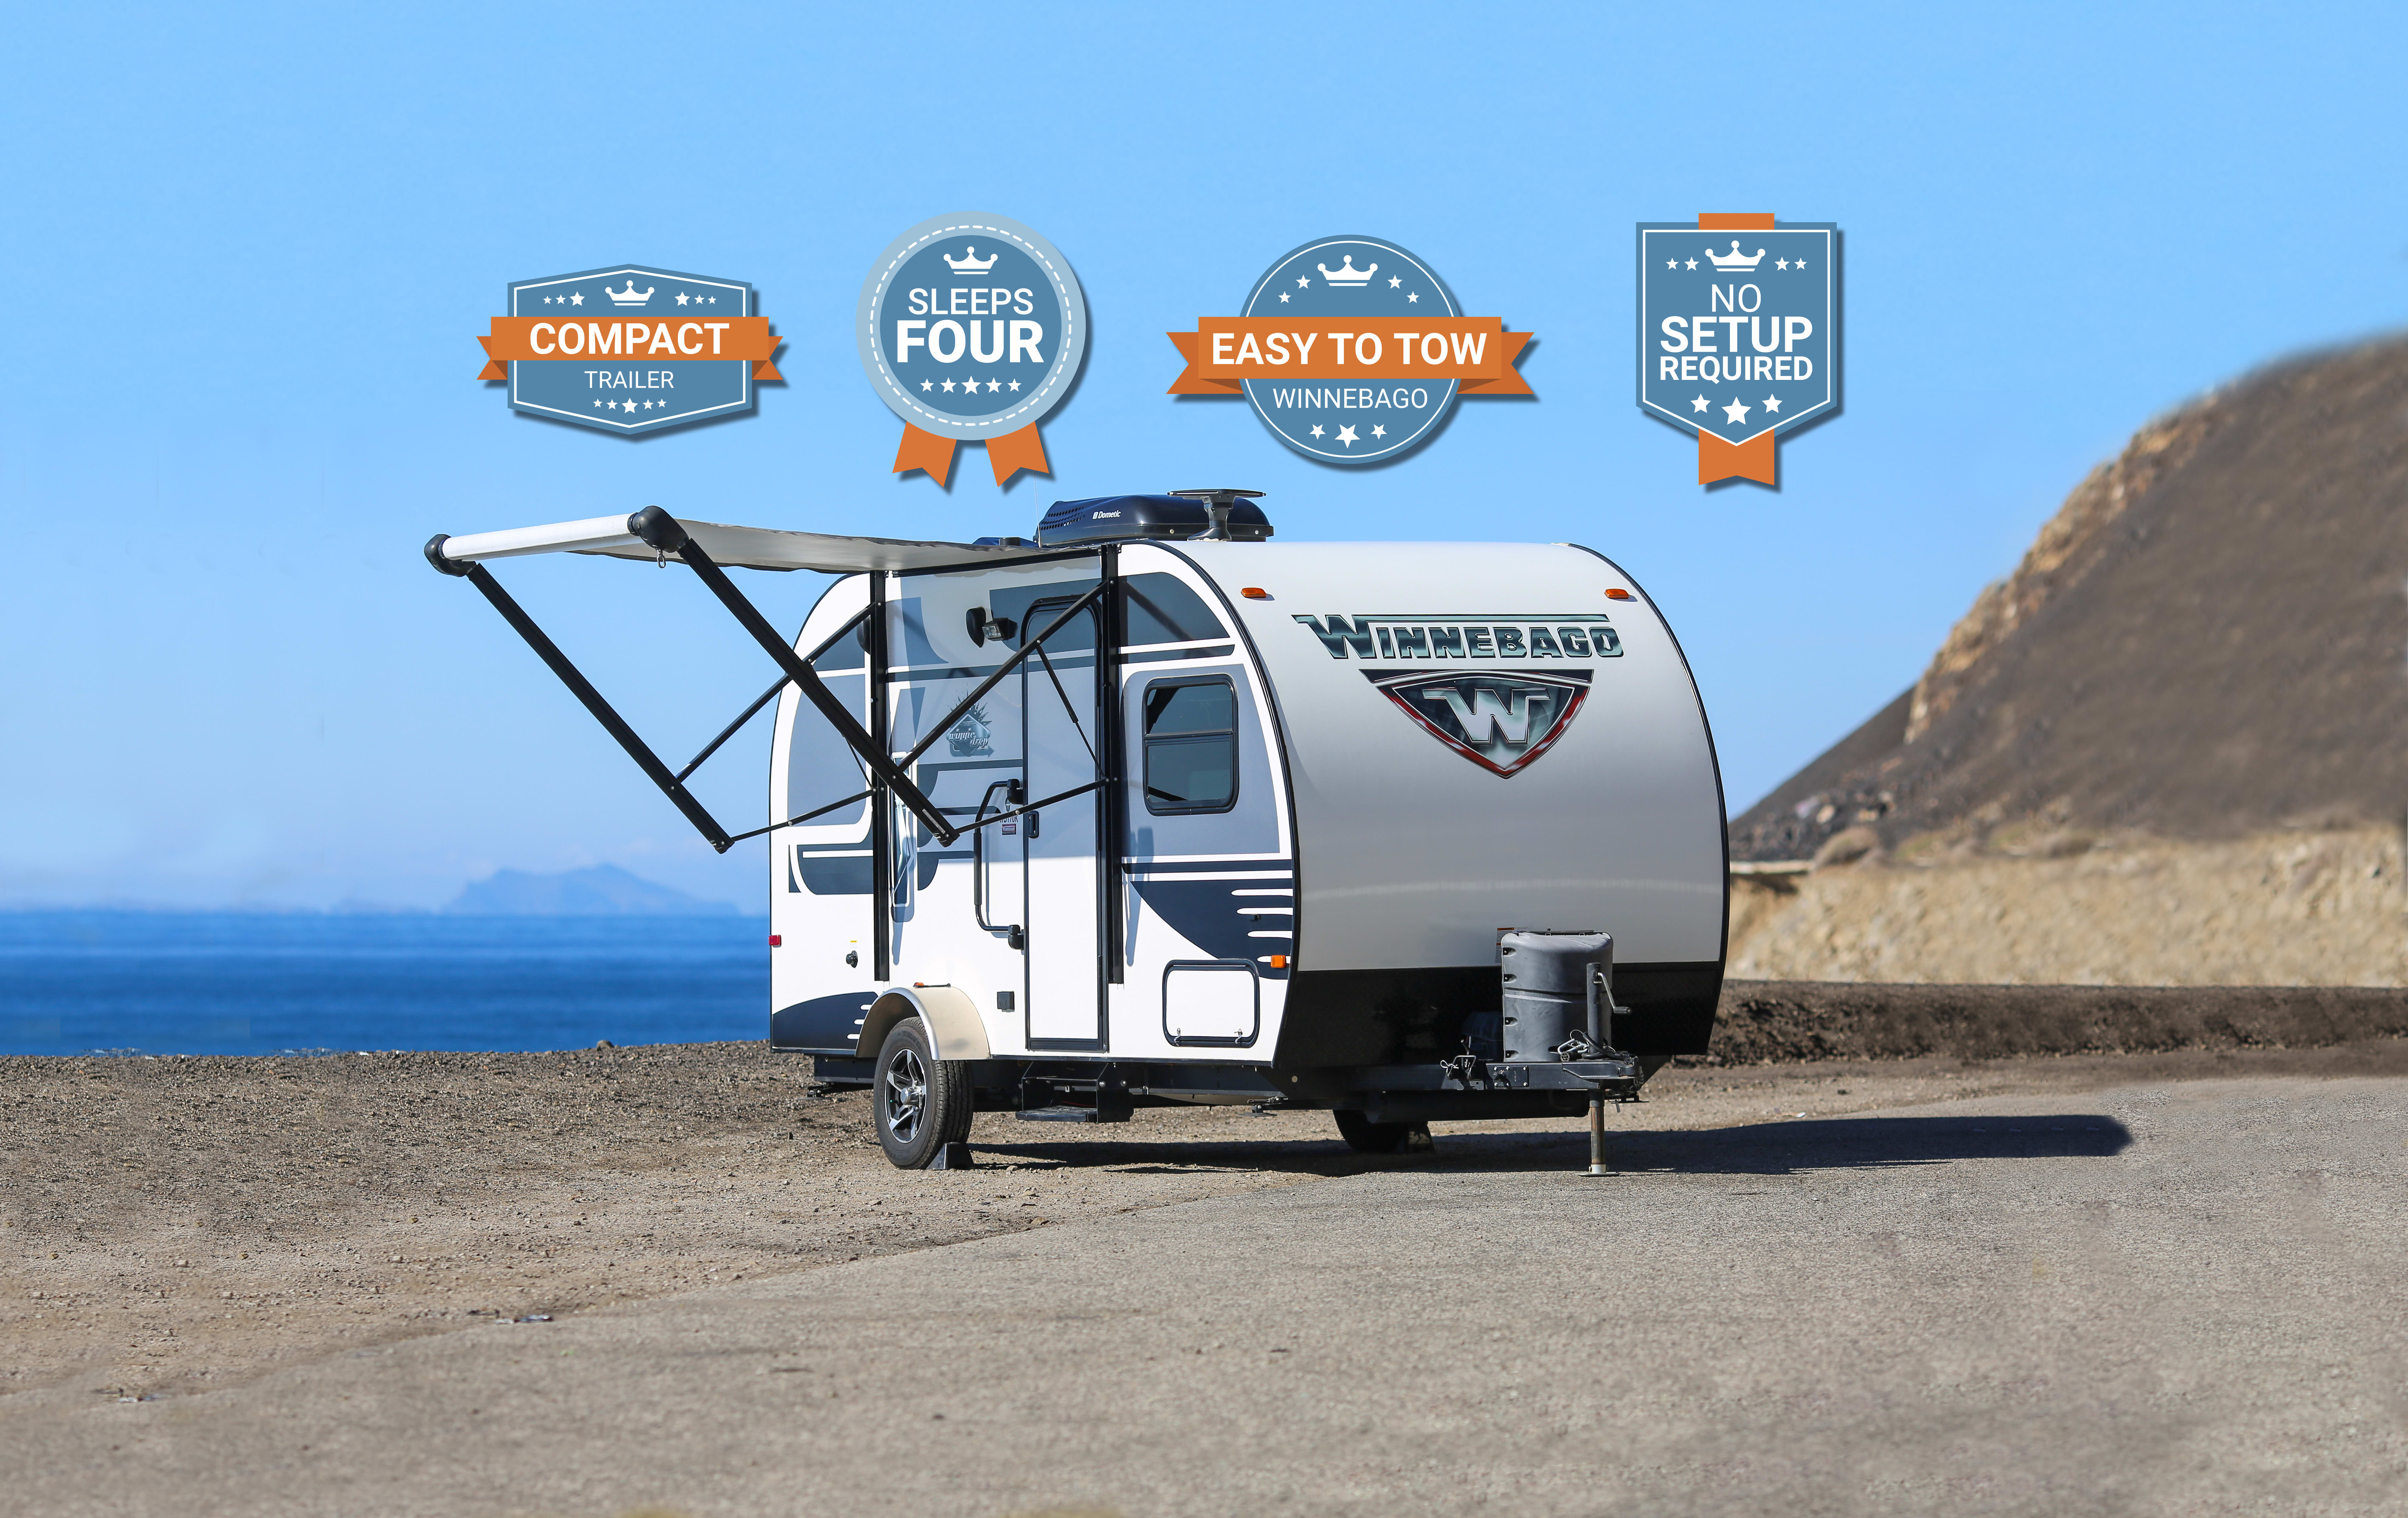 The lightweight Winnebago Winnie Drop 170k is easy to tow, full of features and can be pulled with any vehicle with a towing capacity of 3500 lbs.. Winnebago Winnie Drop 2017